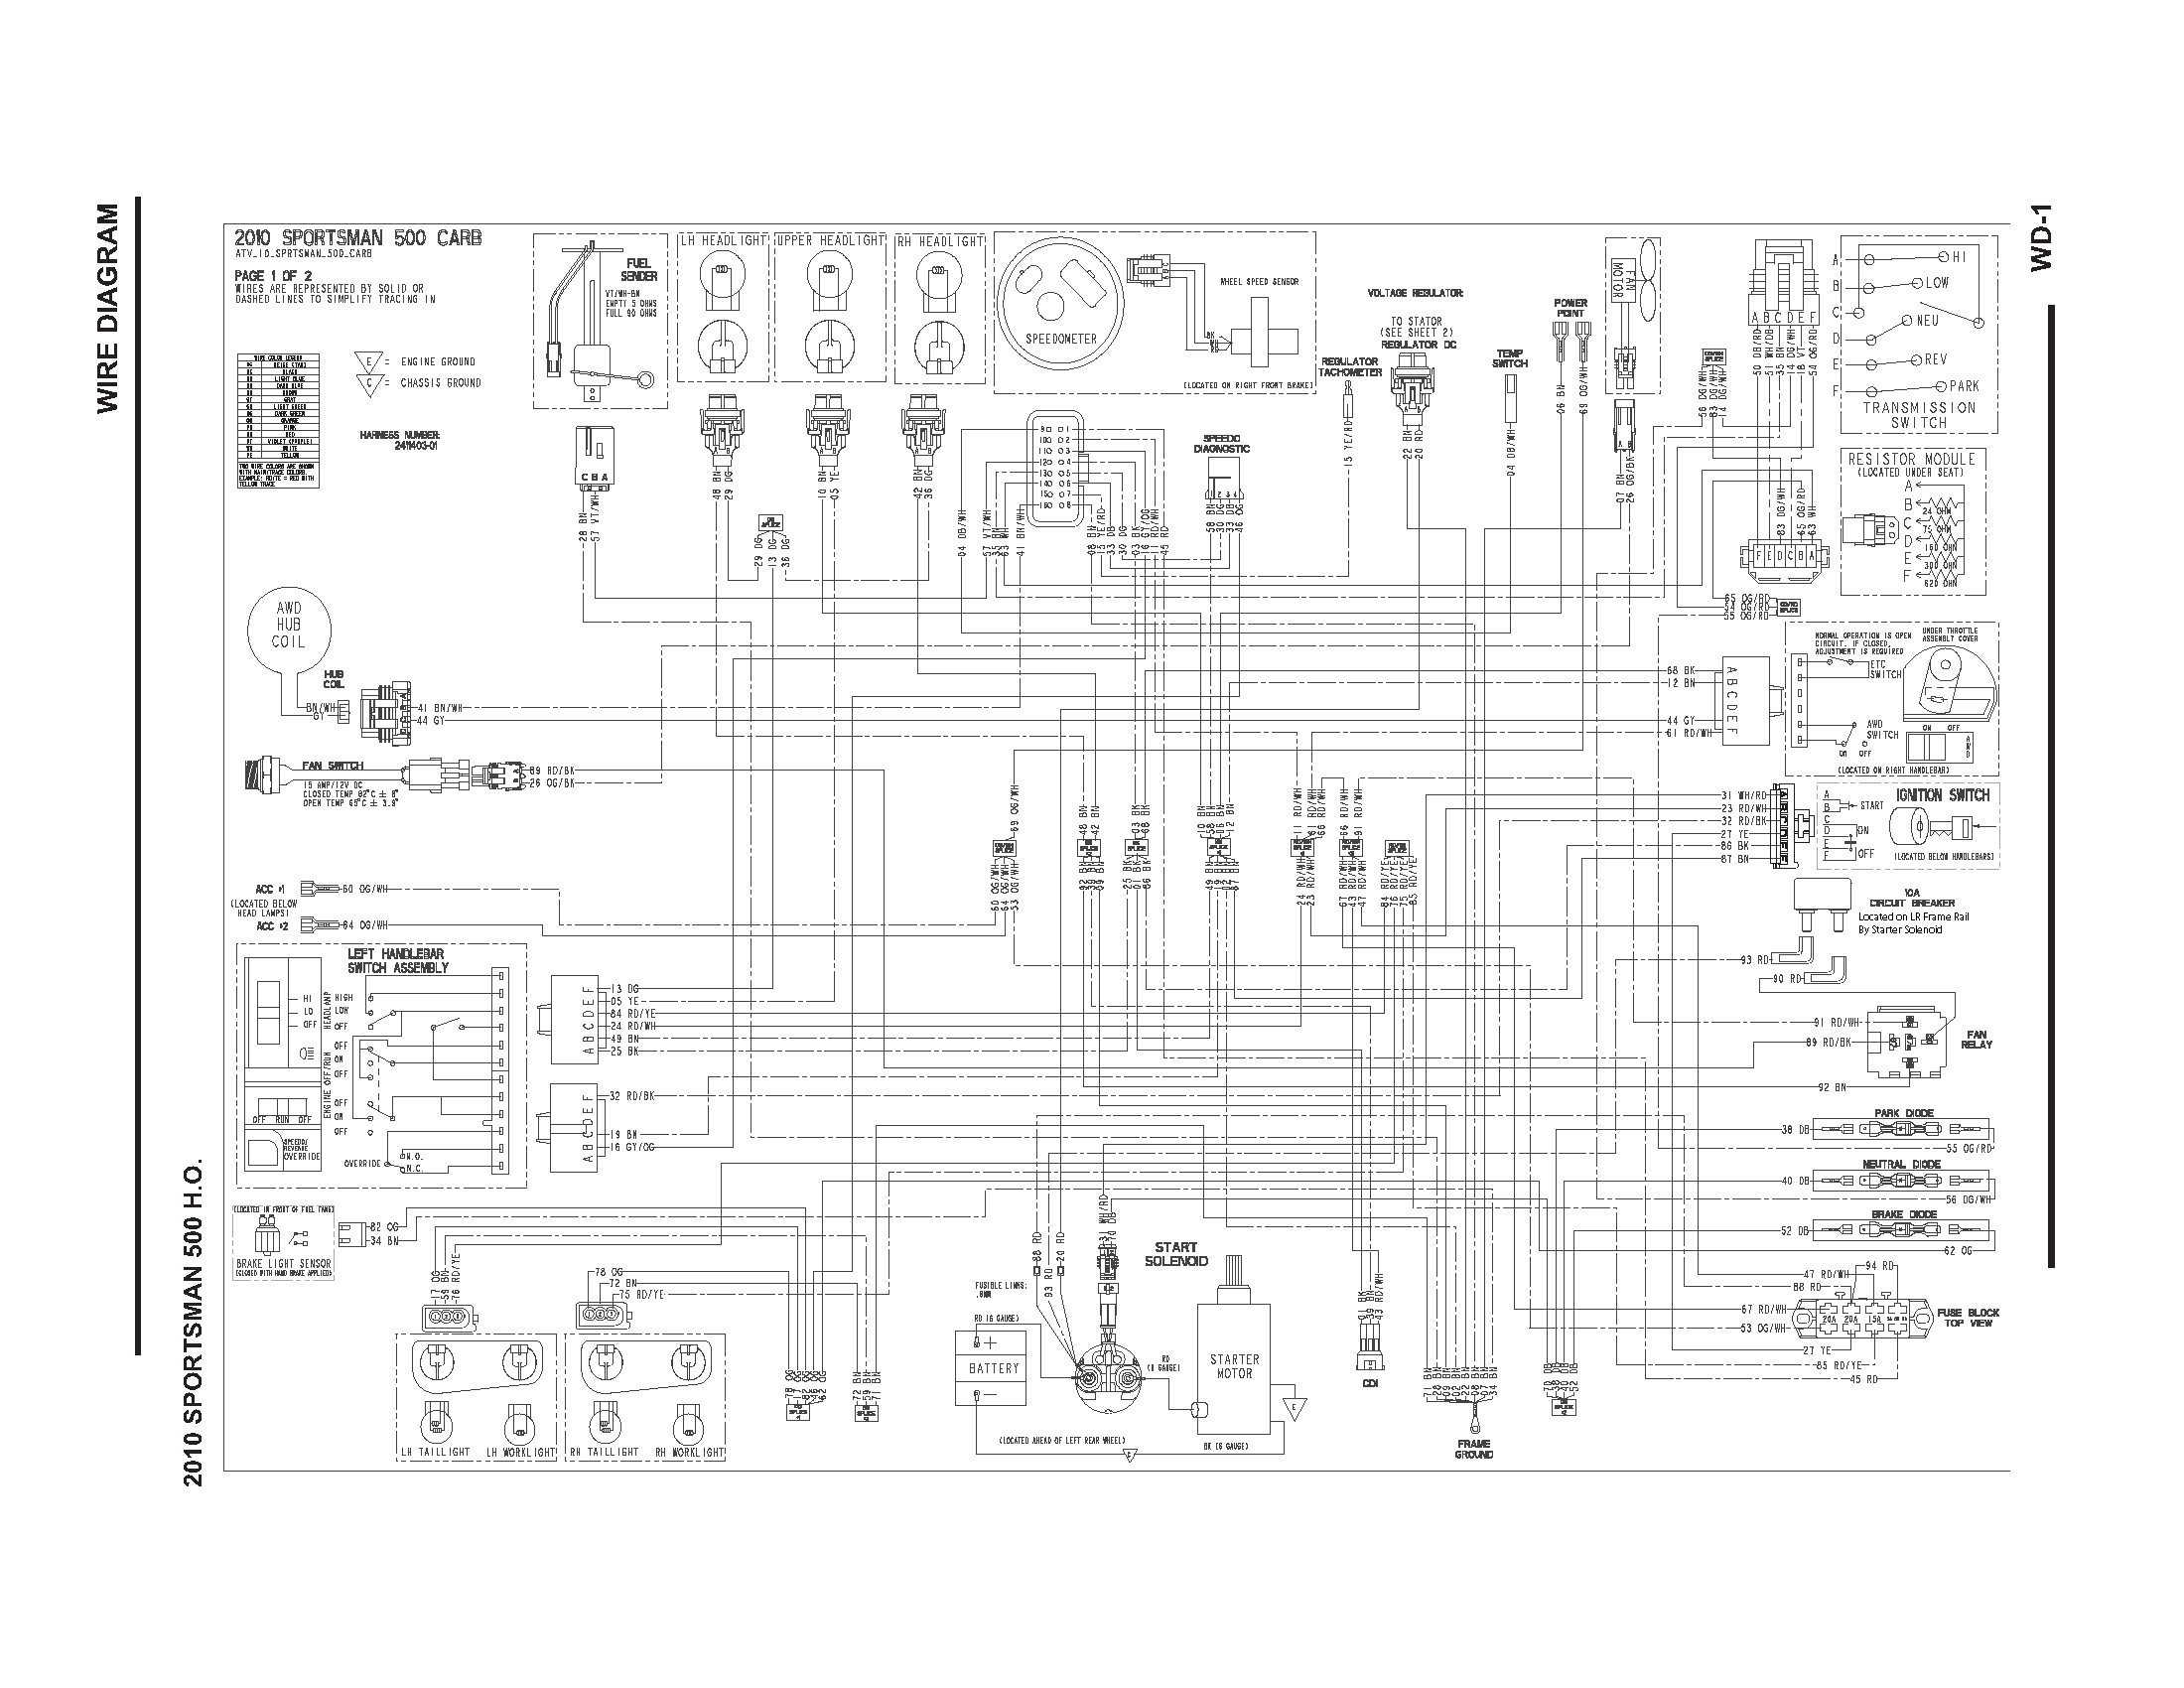 DIAGRAM] 2011 500 Polaris Wiring Diagram FULL Version HD Quality Wiring  Diagram - EGOOGLIVING.PER-BACCO.IT  Per-Bacco.it